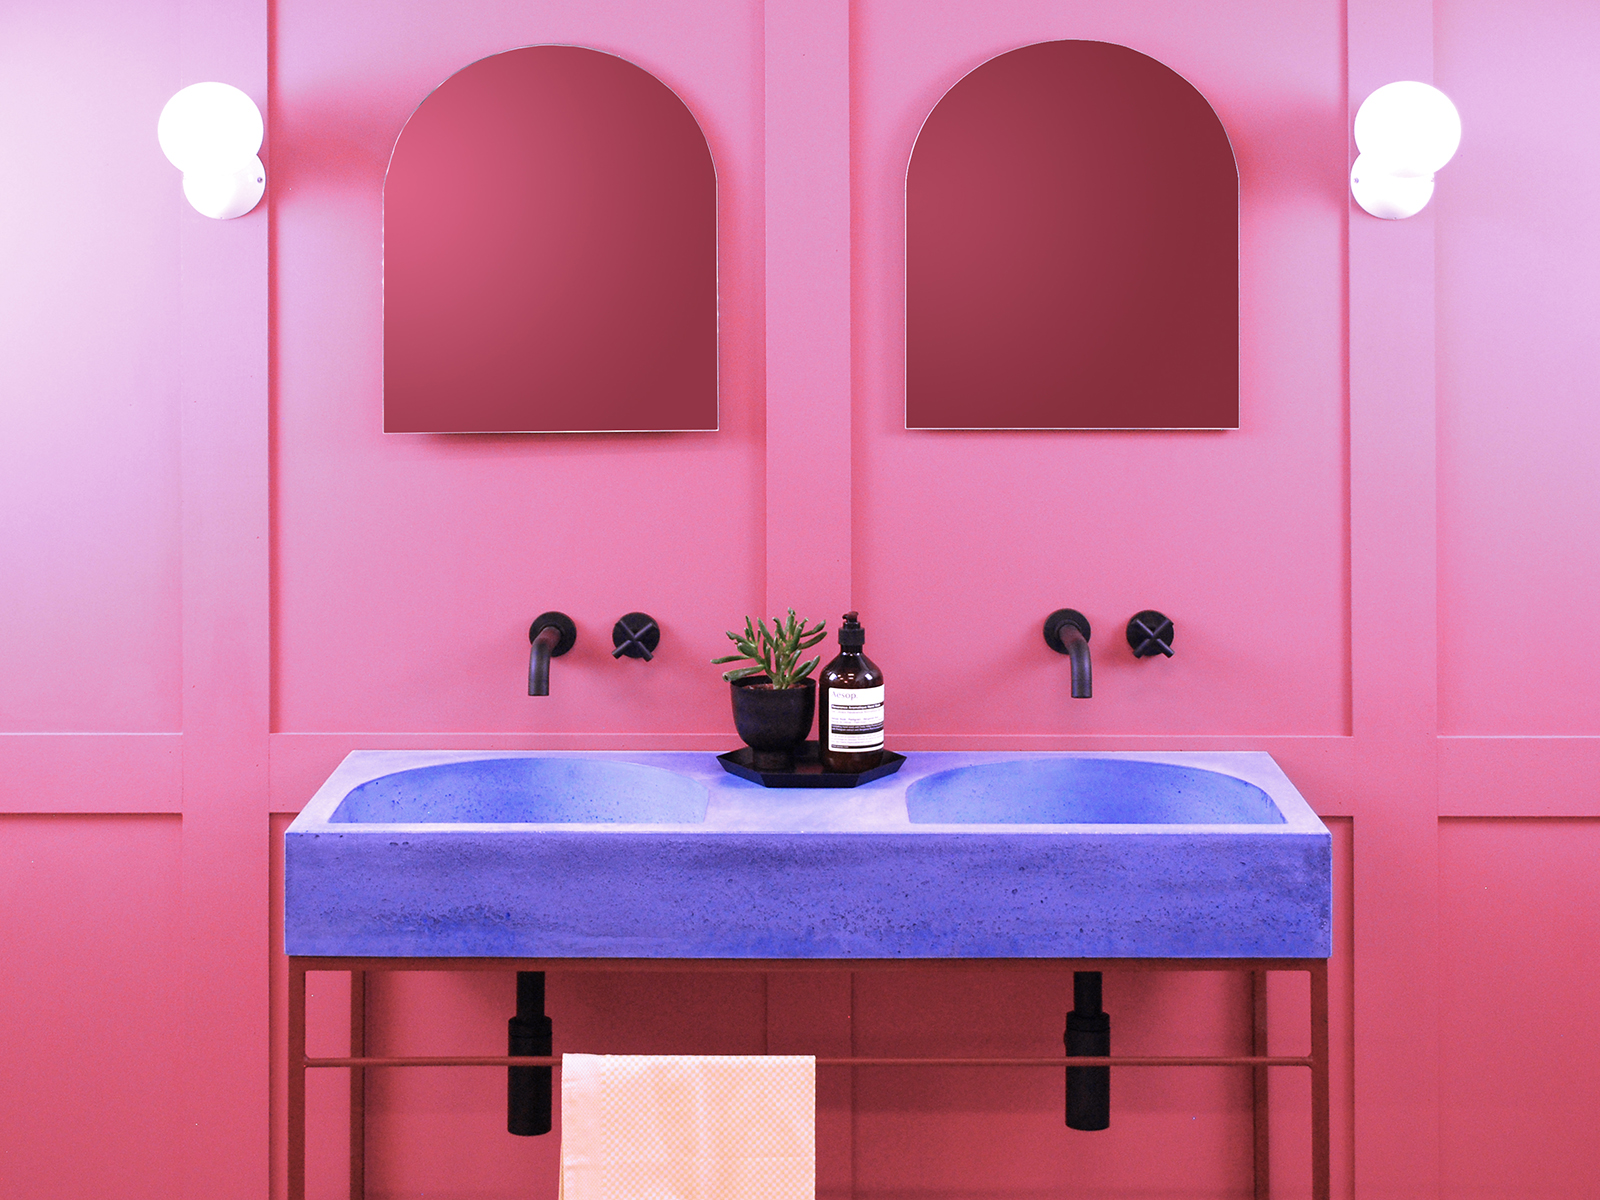 A curved purple concrete basin against a bright pink wall